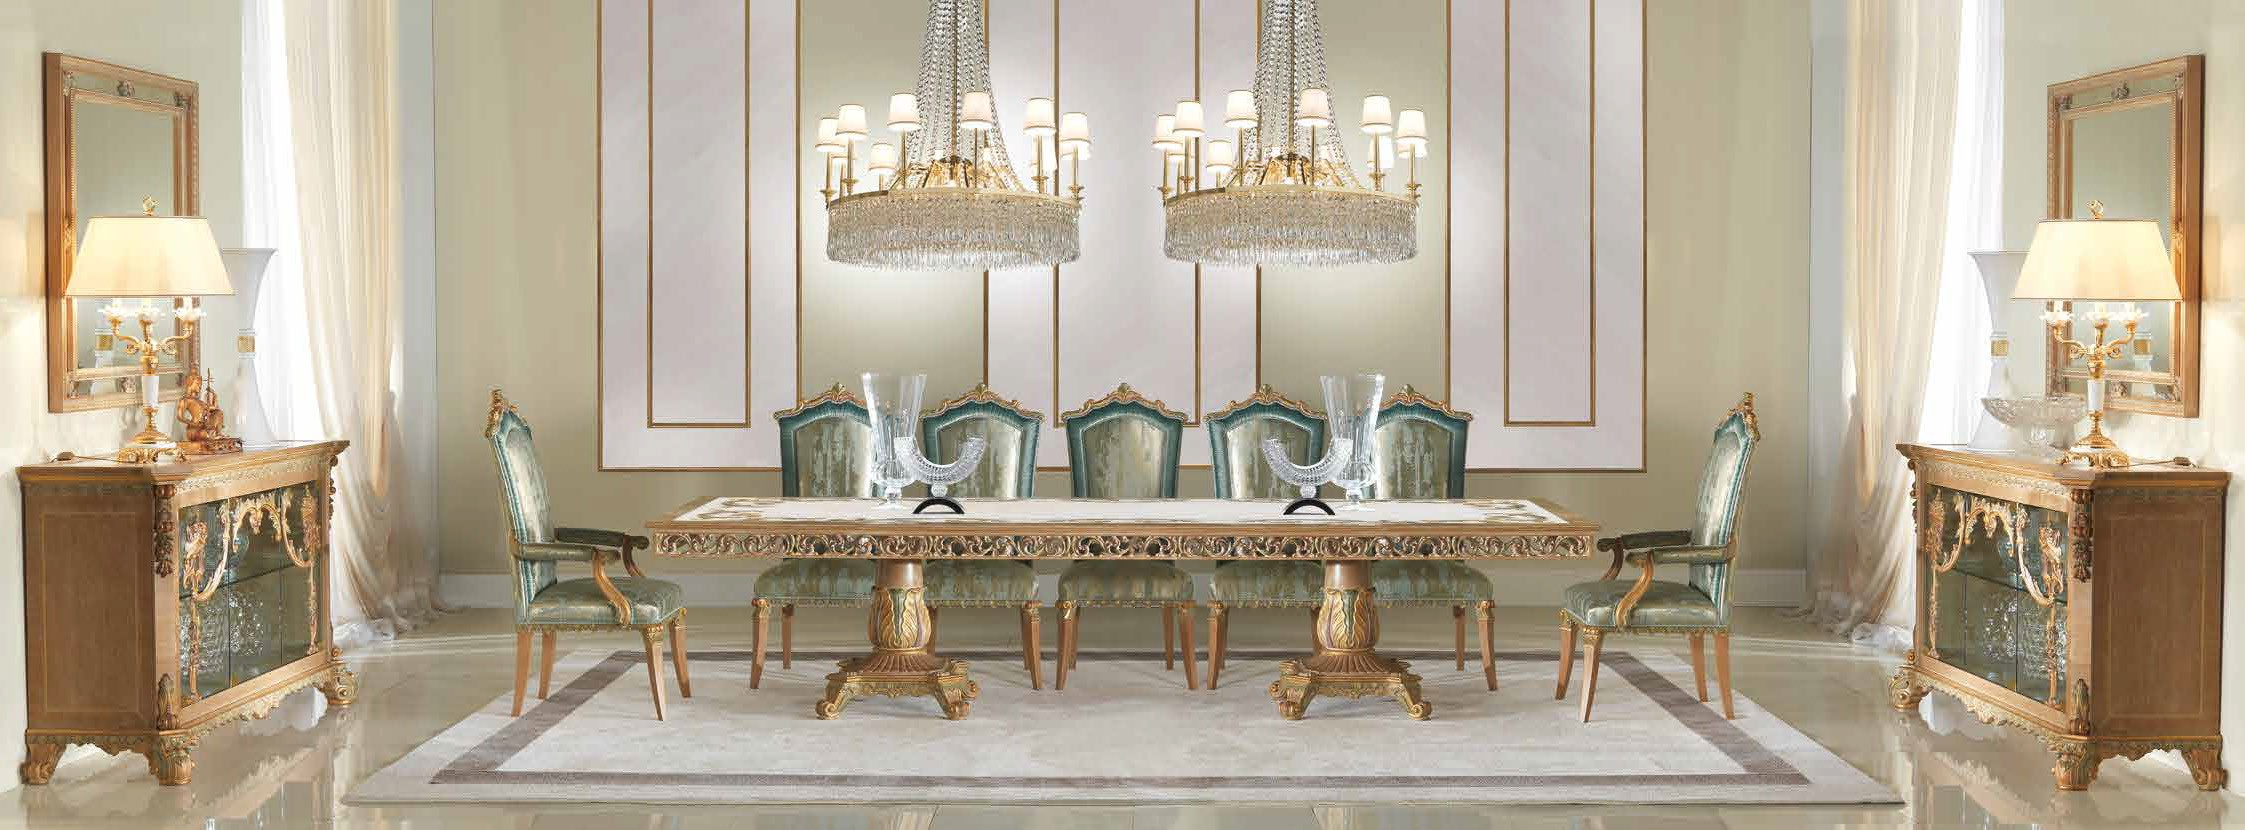 Gorgeous Sirens of the Sea Dining Room Furniture Set